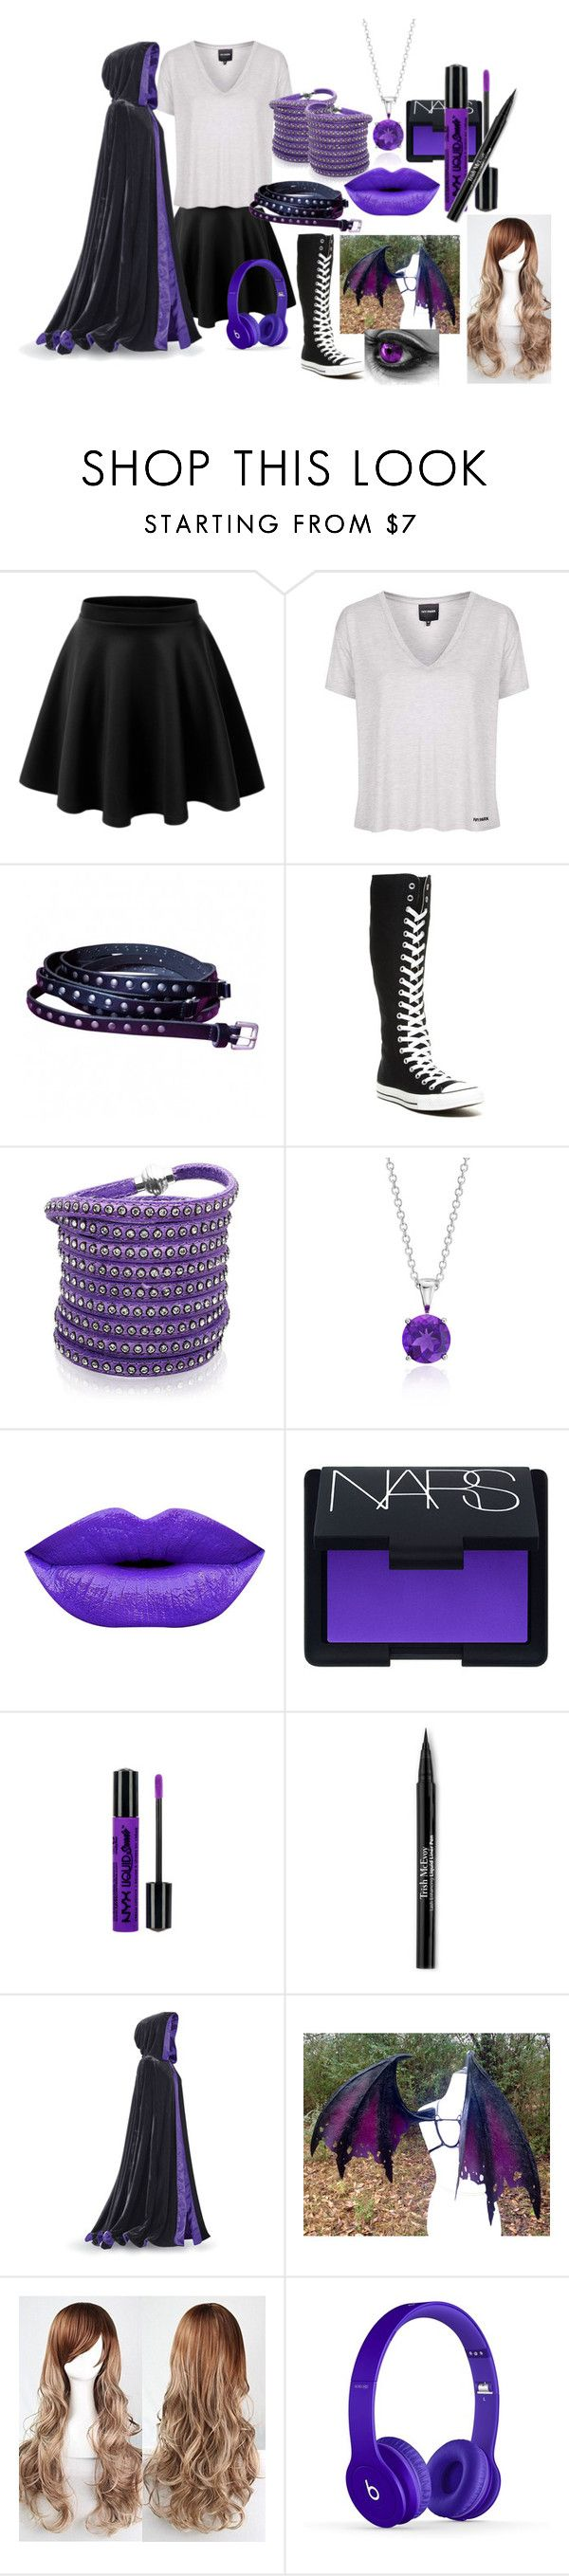 """""""Am i a monster? (enderlight)"""" by eyeless-angel-of-death ❤ liked on Polyvore featuring LE3NO, Topshop, Converse, Sif Jakobs Jewellery, Blue Nile, NARS Cosmetics, NYX, Trish McEvoy and Haze"""